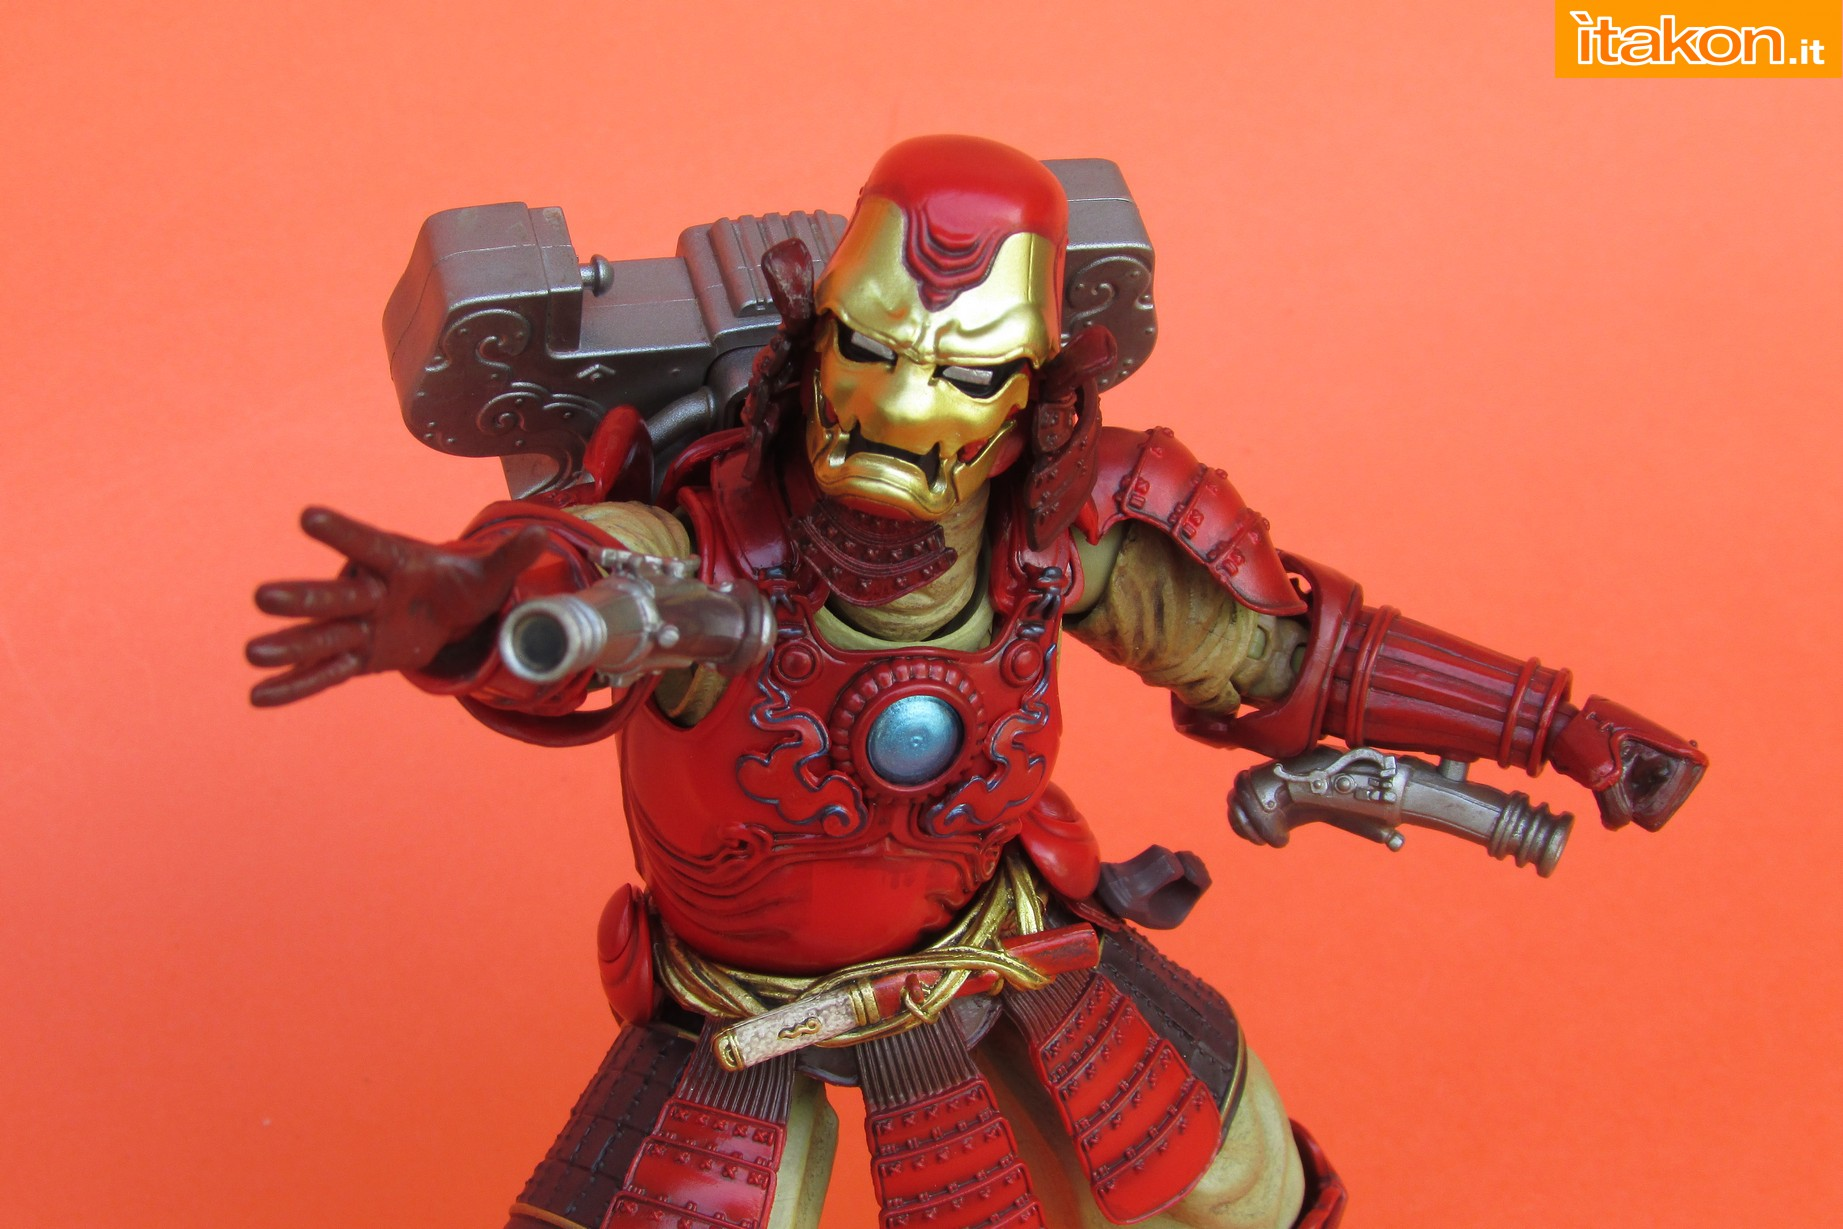 Link a Marvel Comics Koutetsu Samurai Iron Man Mark 3 Meishou MANGA REALIZATION review Bandai Itakon.it37